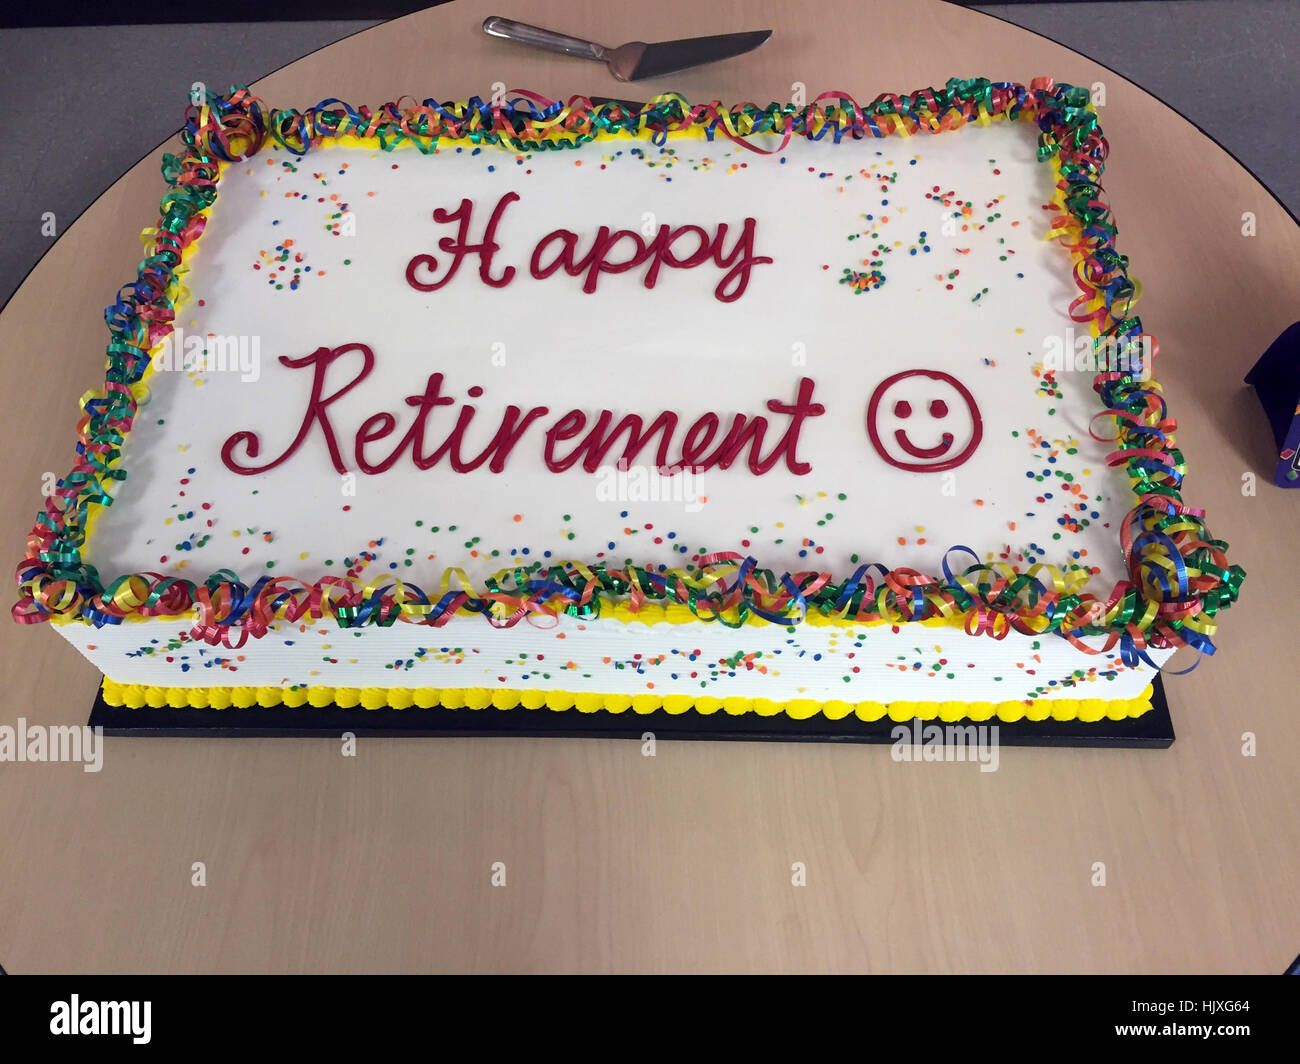 Happy Retirement Cake Stock Photo